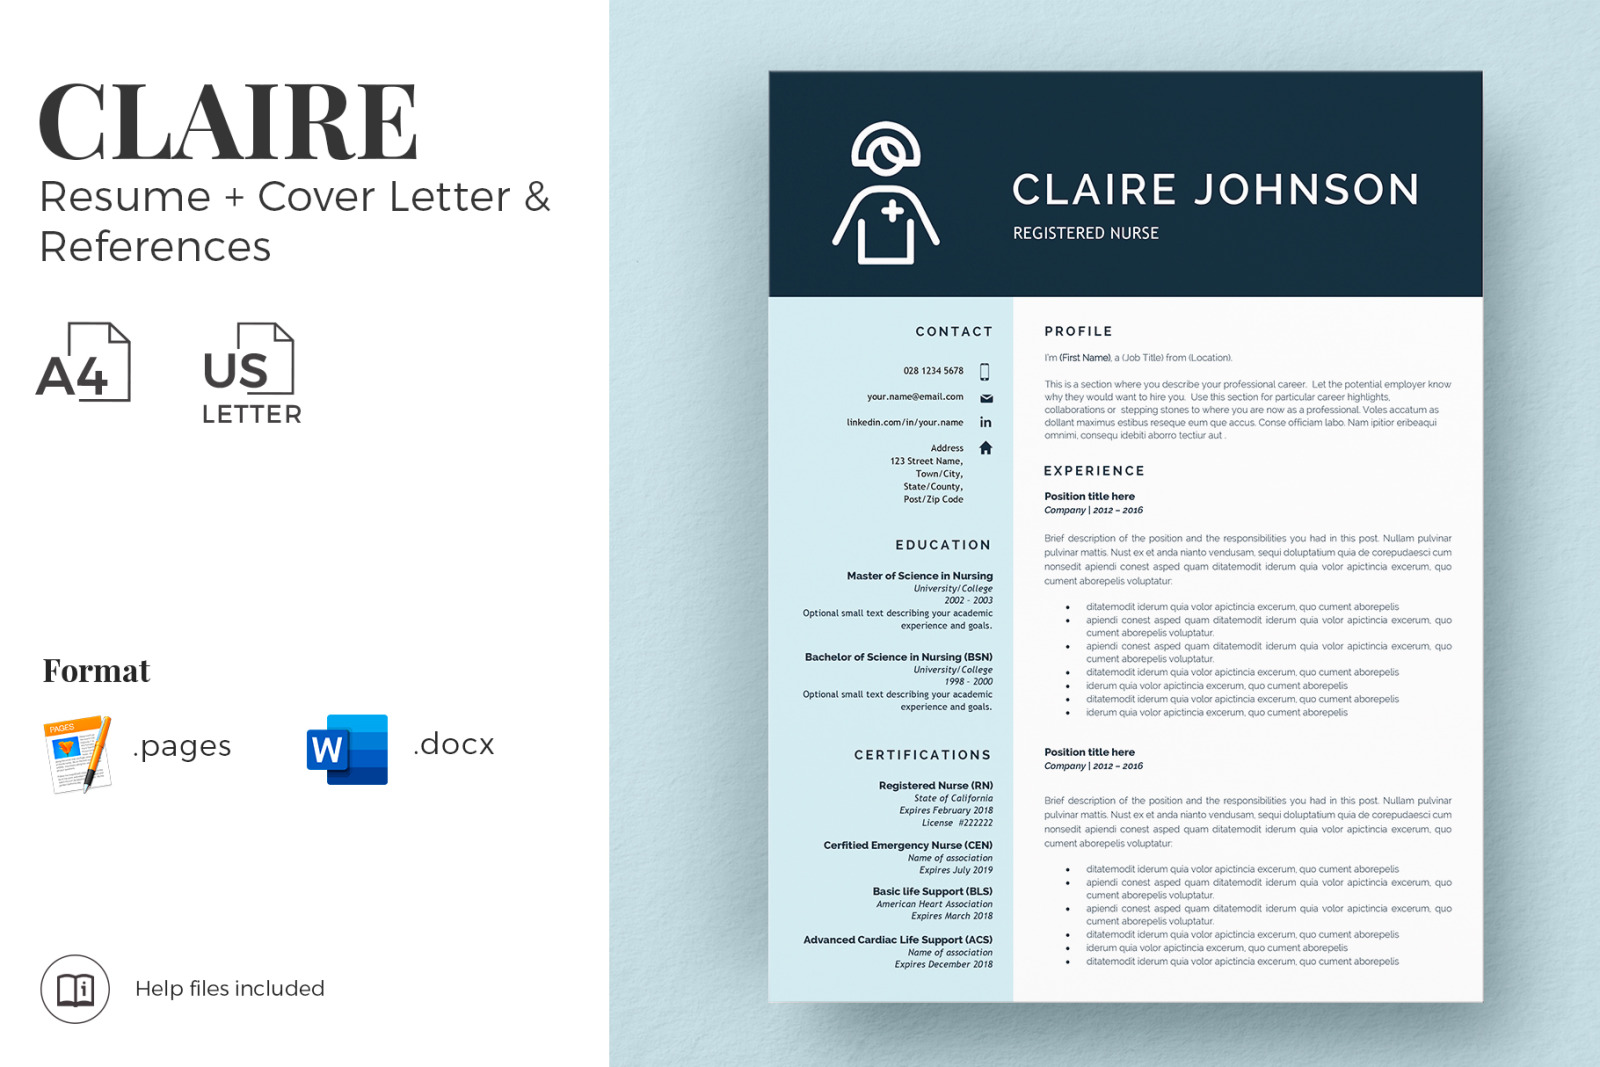 registered nurse resume template new grad cv cover letter and references for word in Resume New Graduate Rn Resume Template